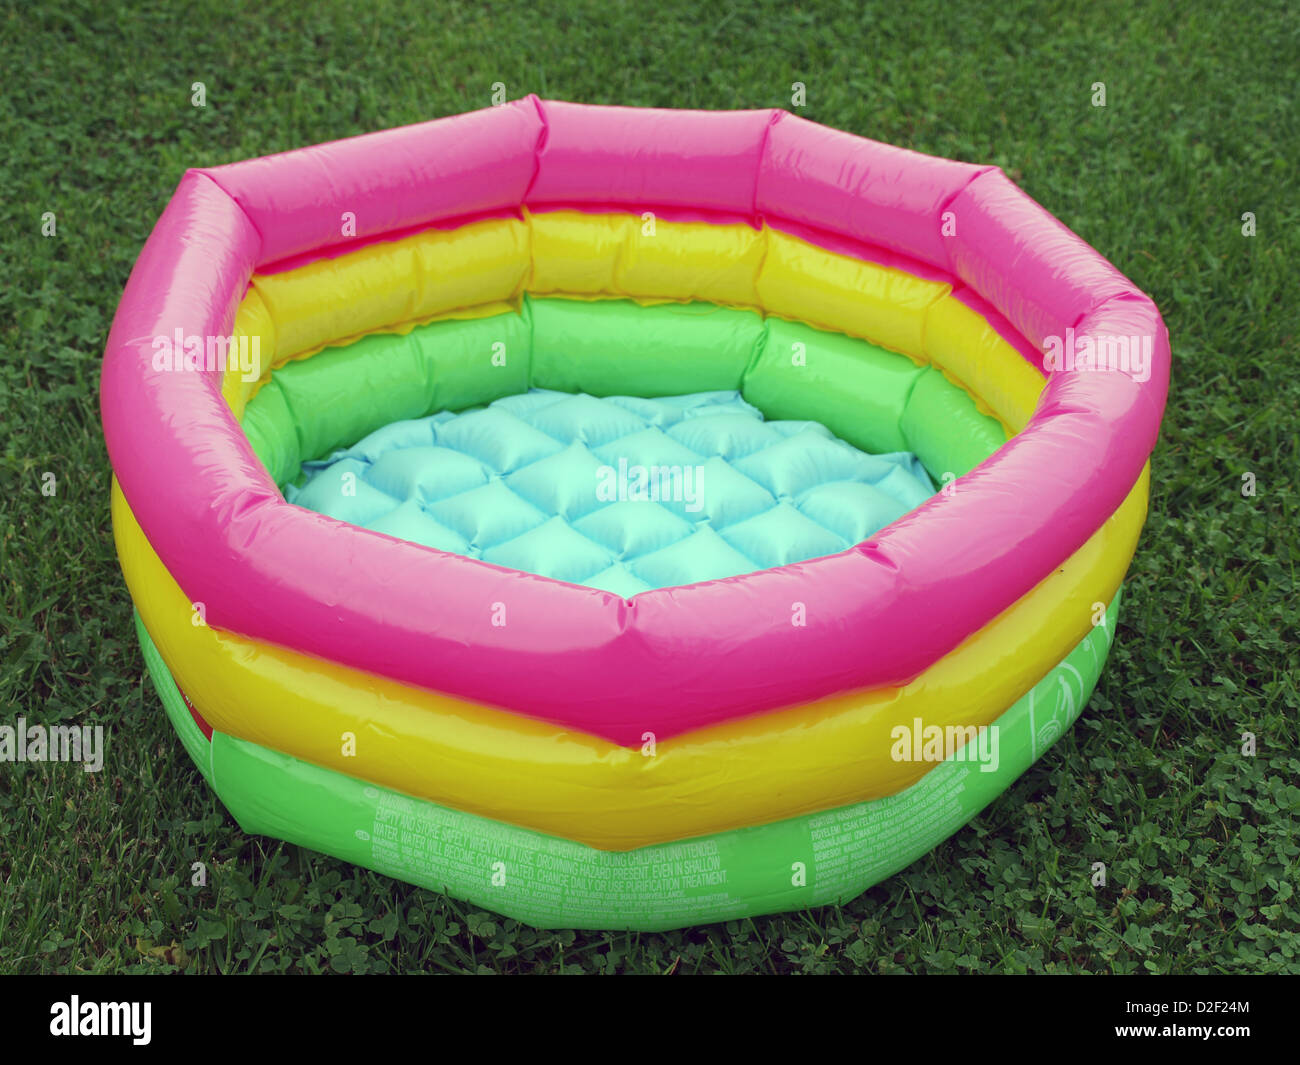 Small Empty Colorful Inflatable Plastic Swimming Pool For Kids